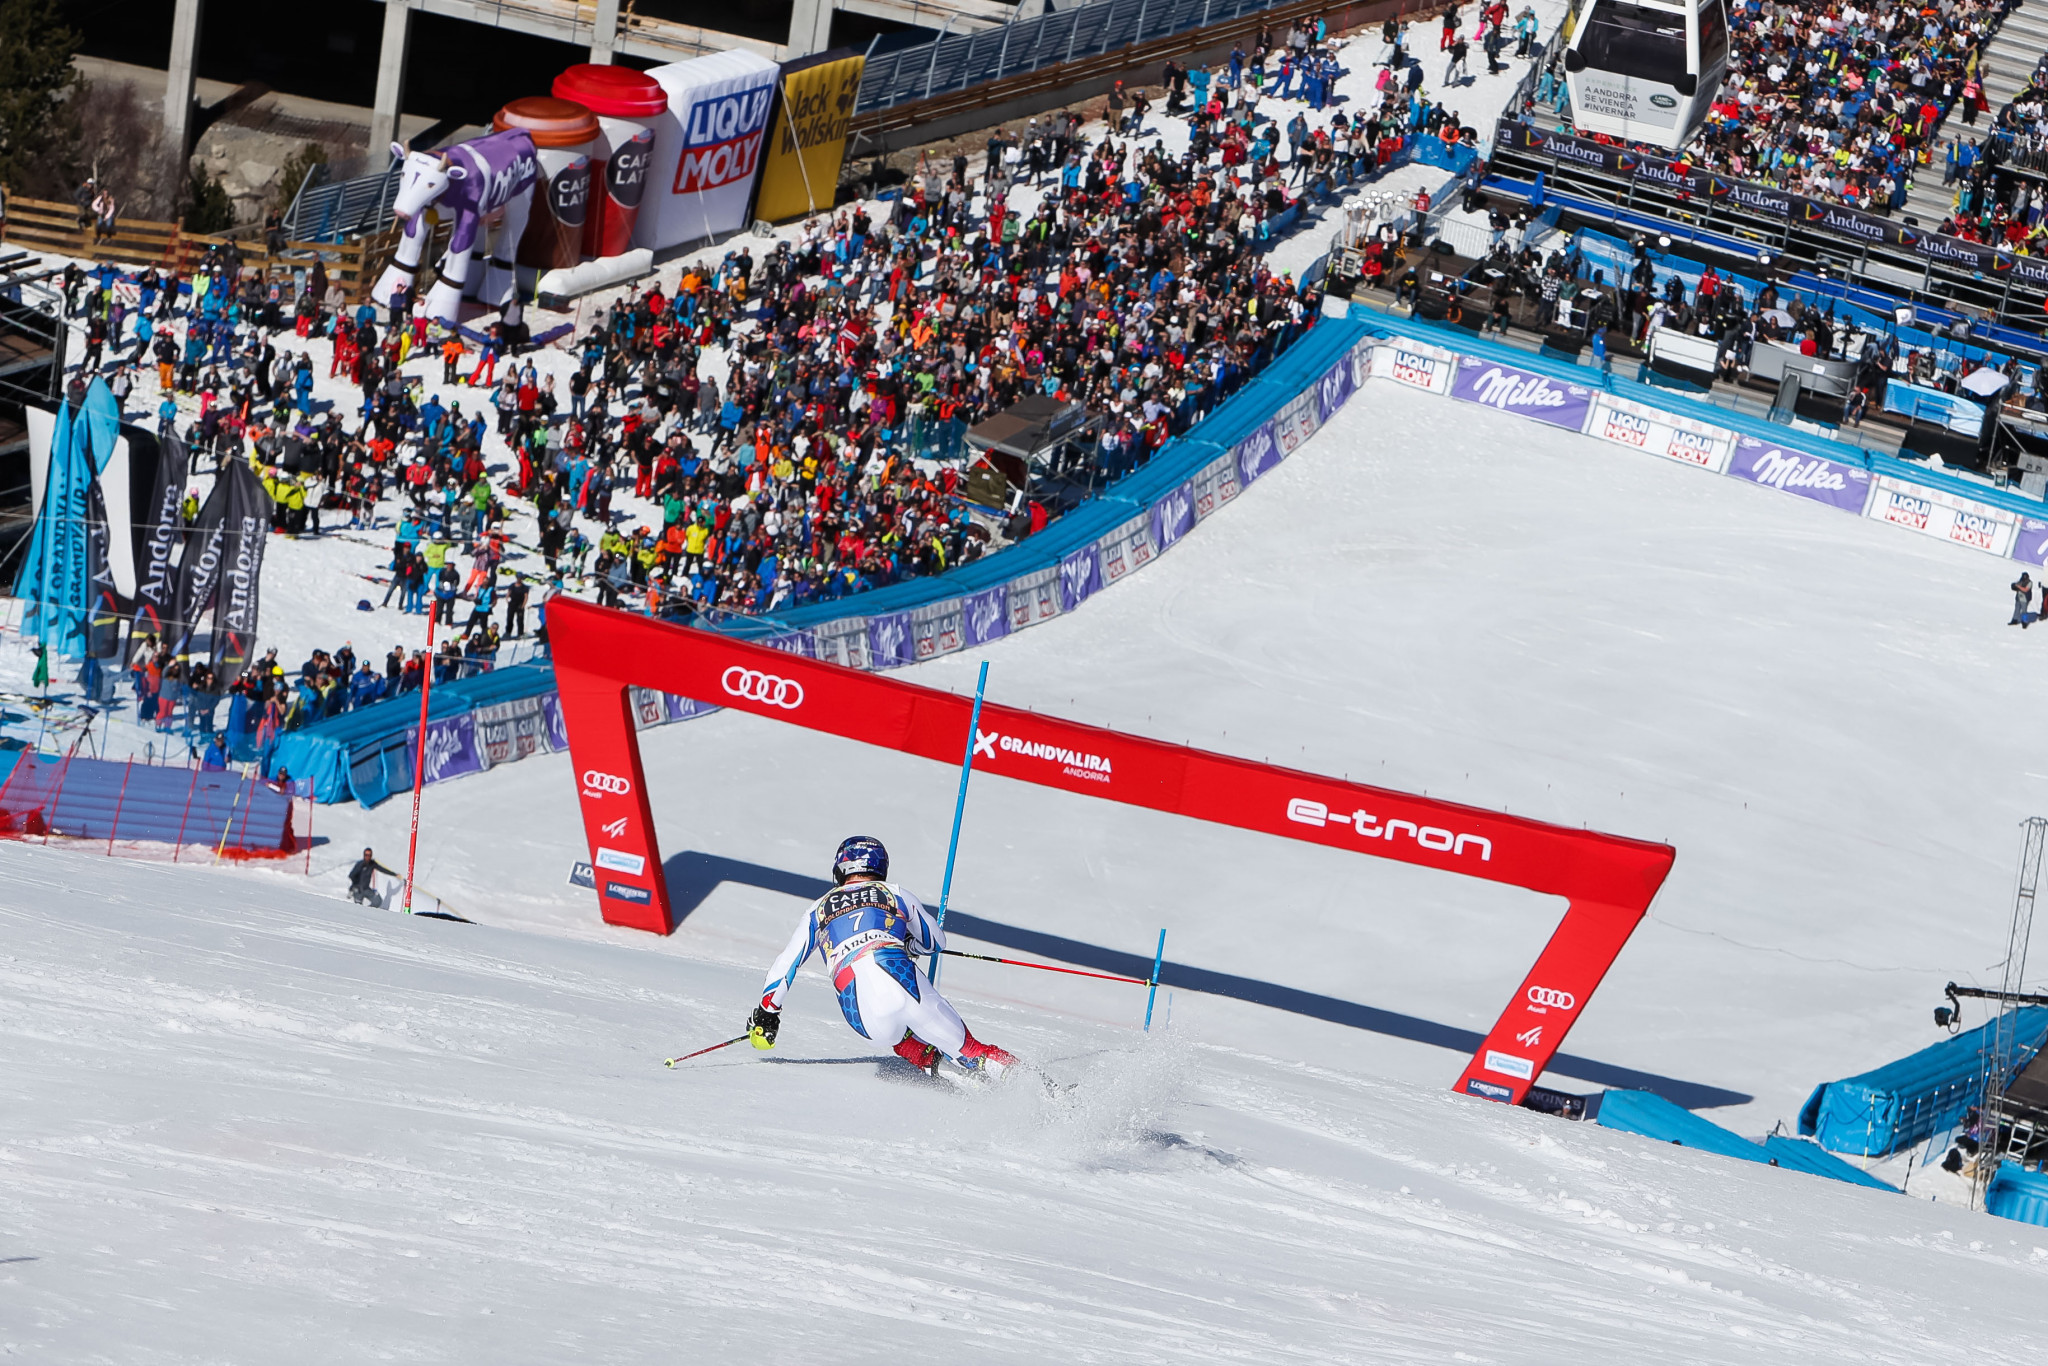 Soldeu is one of the bidders for the 2027 Alpine World Ski Championships ©Getty Images